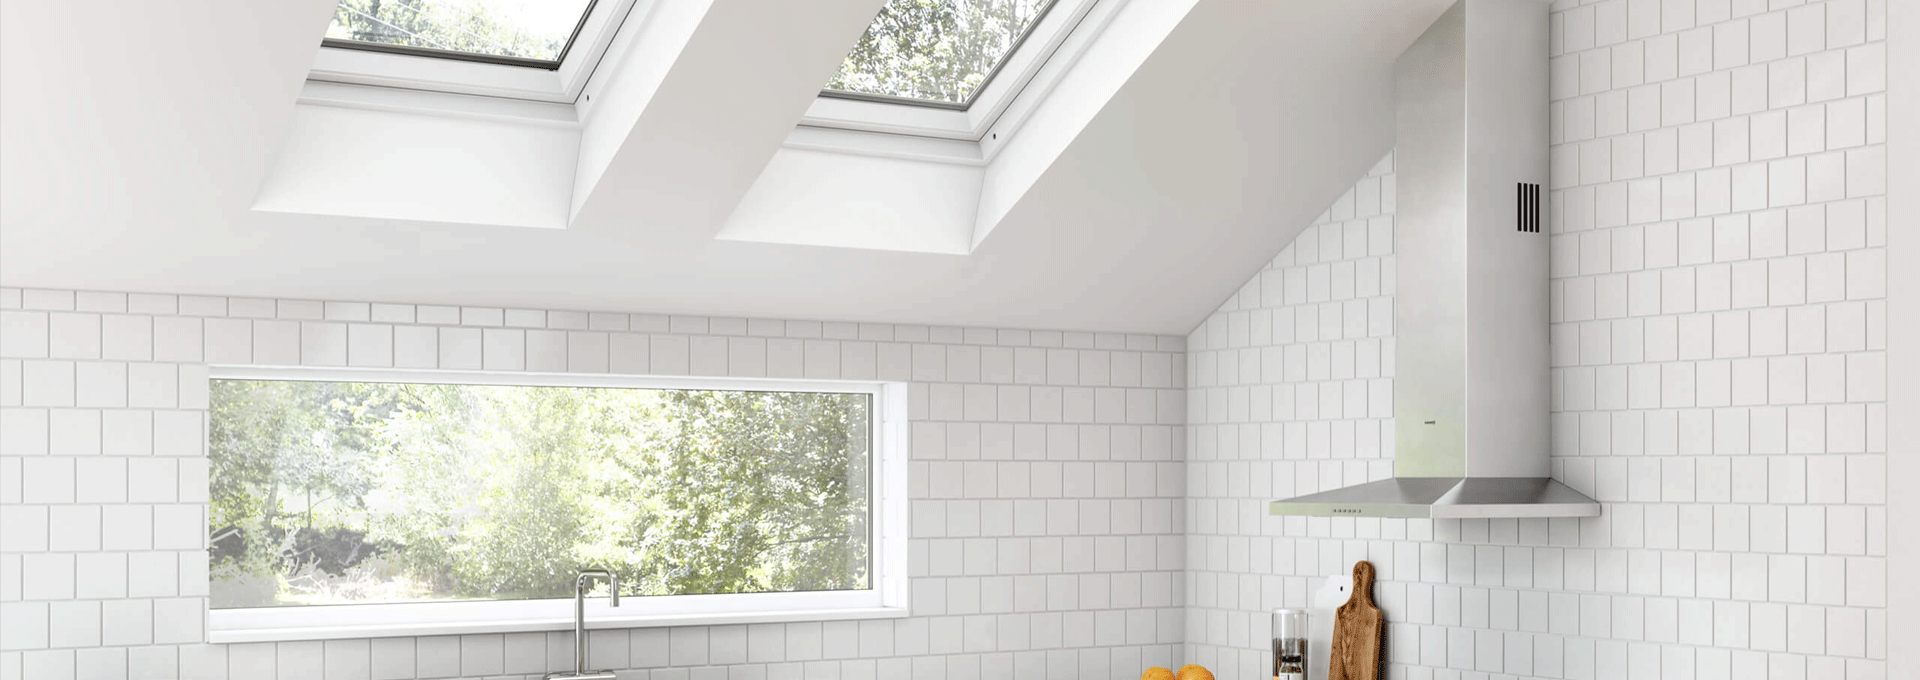 Keylite Skylights & Roof Windows for Kitchen